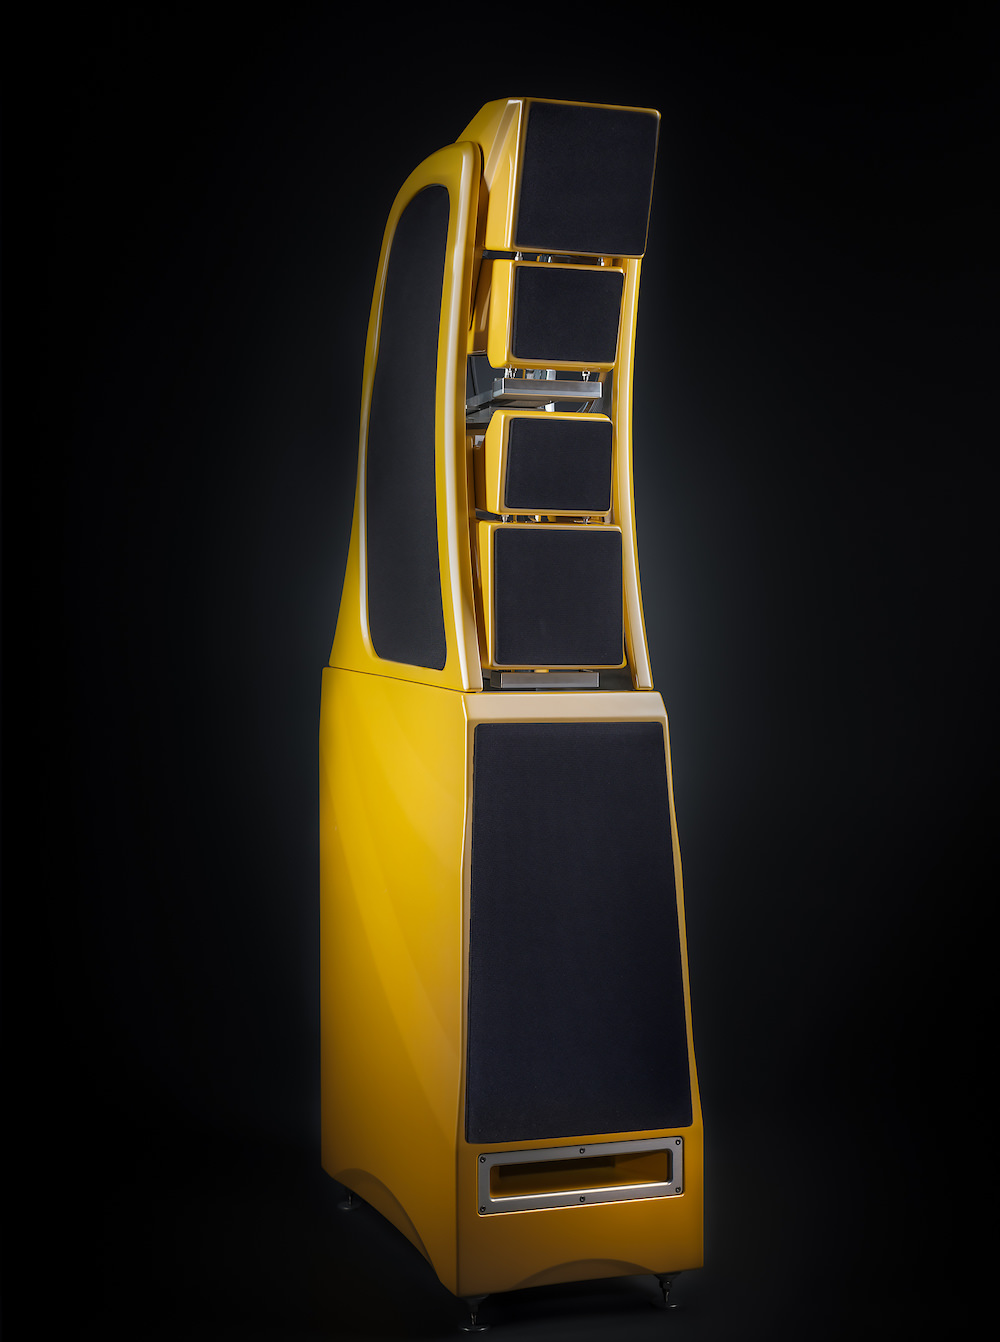 Wilson Audio Chronosonic XVX Loudspeakers in Saffron Pearl Cove (Yellow) With Grille